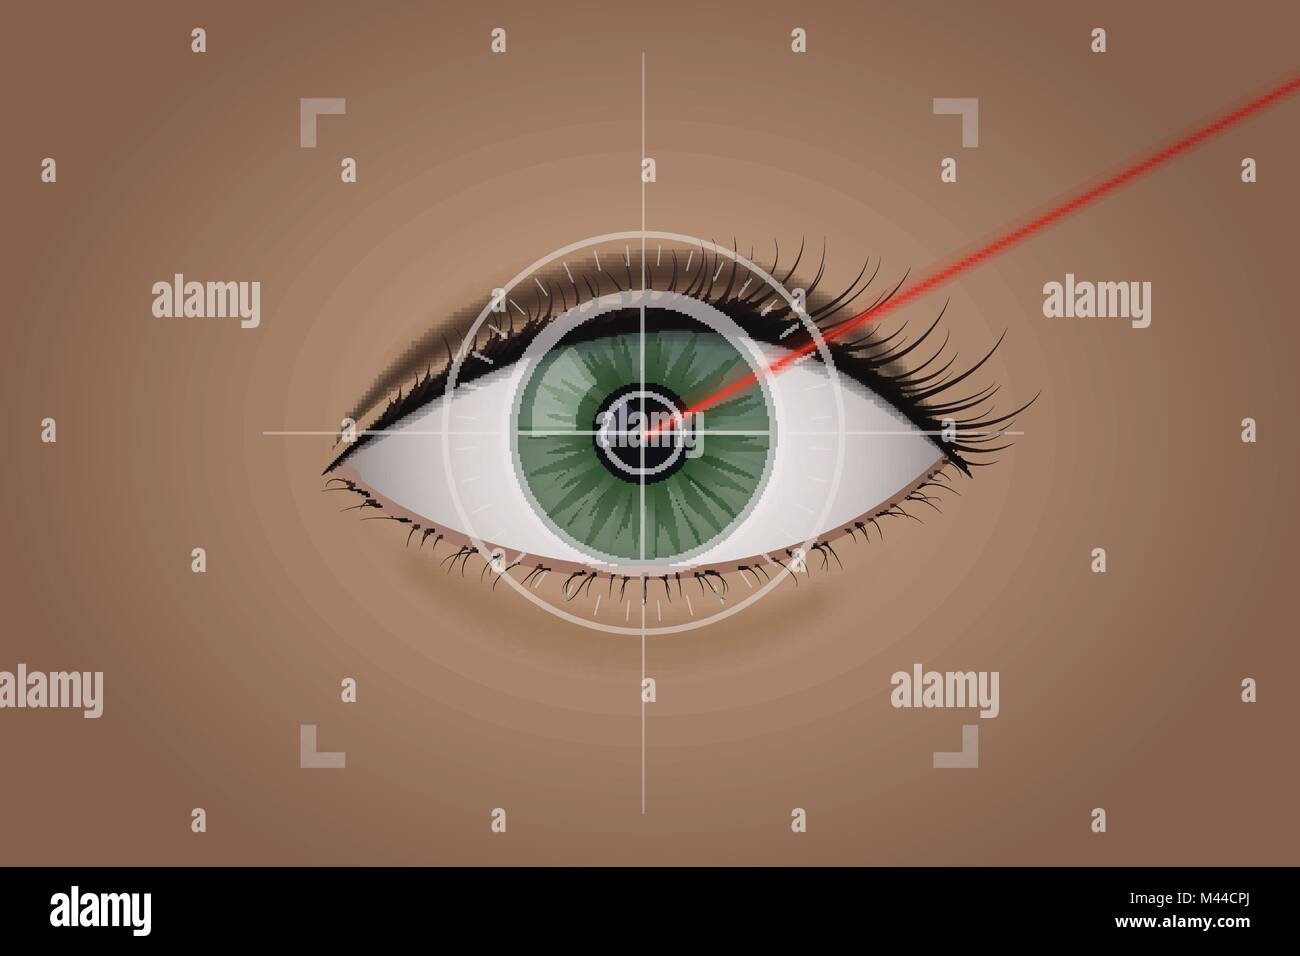 Vision correction by a laser beam. Stock Vector